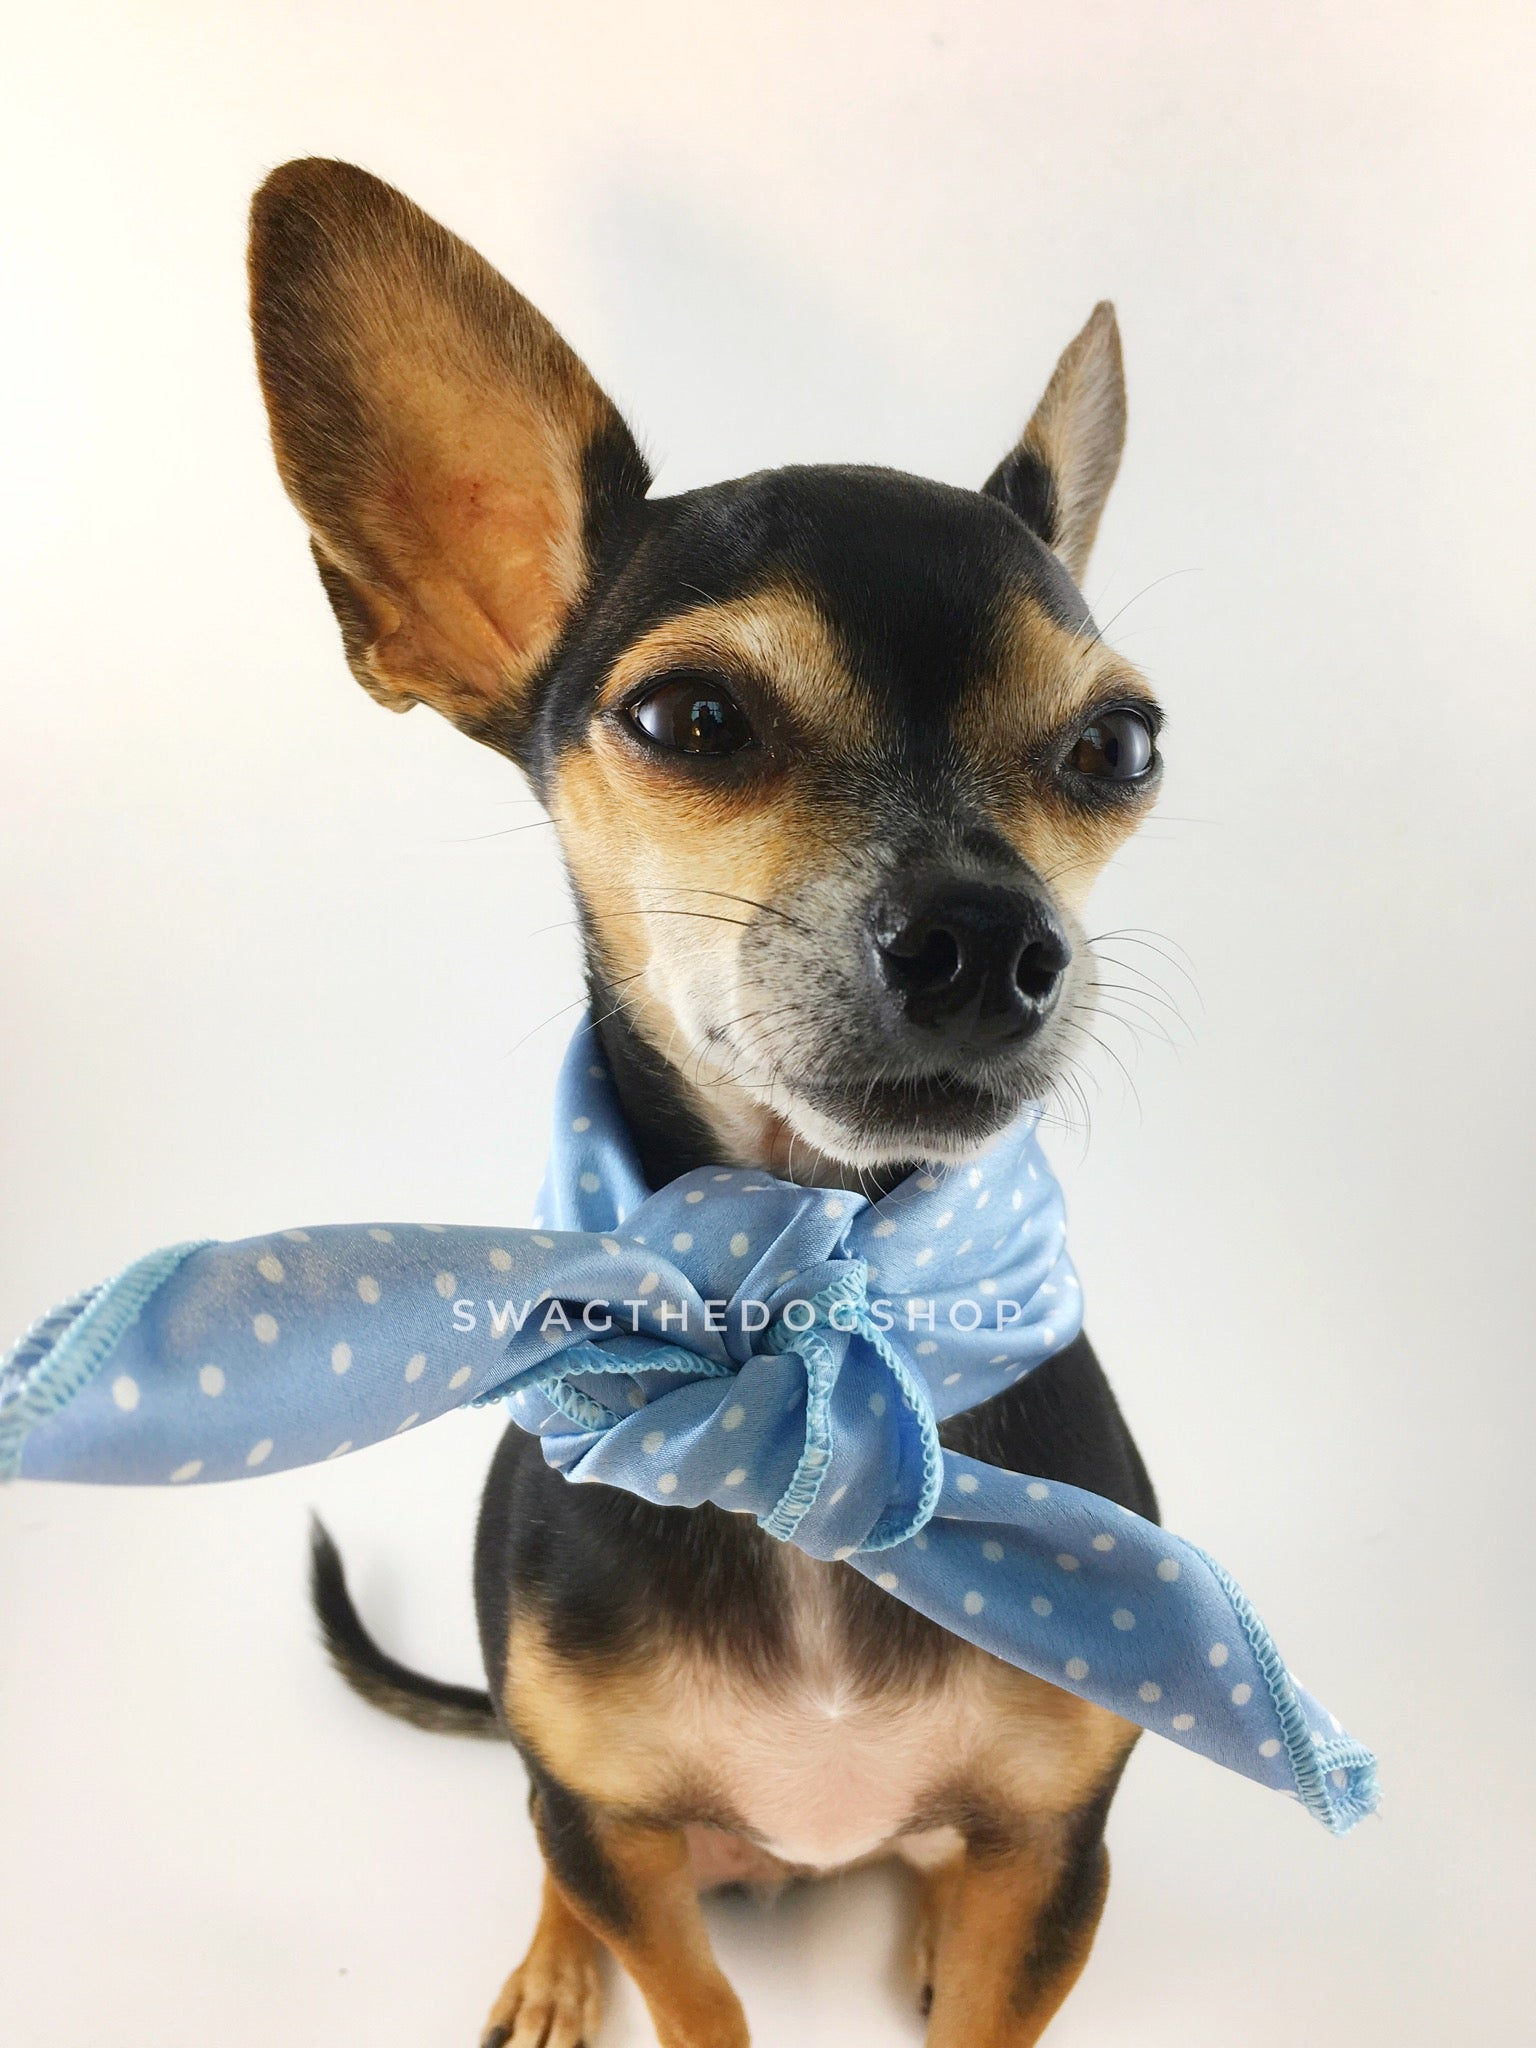 Polka Itty Bitty Powder Blue Swagdana Scarf - Bust of Cute Chihuahua Wearing Swagdana Scarf as Neck Scarf. Dog Bandana. Dog Scarf.